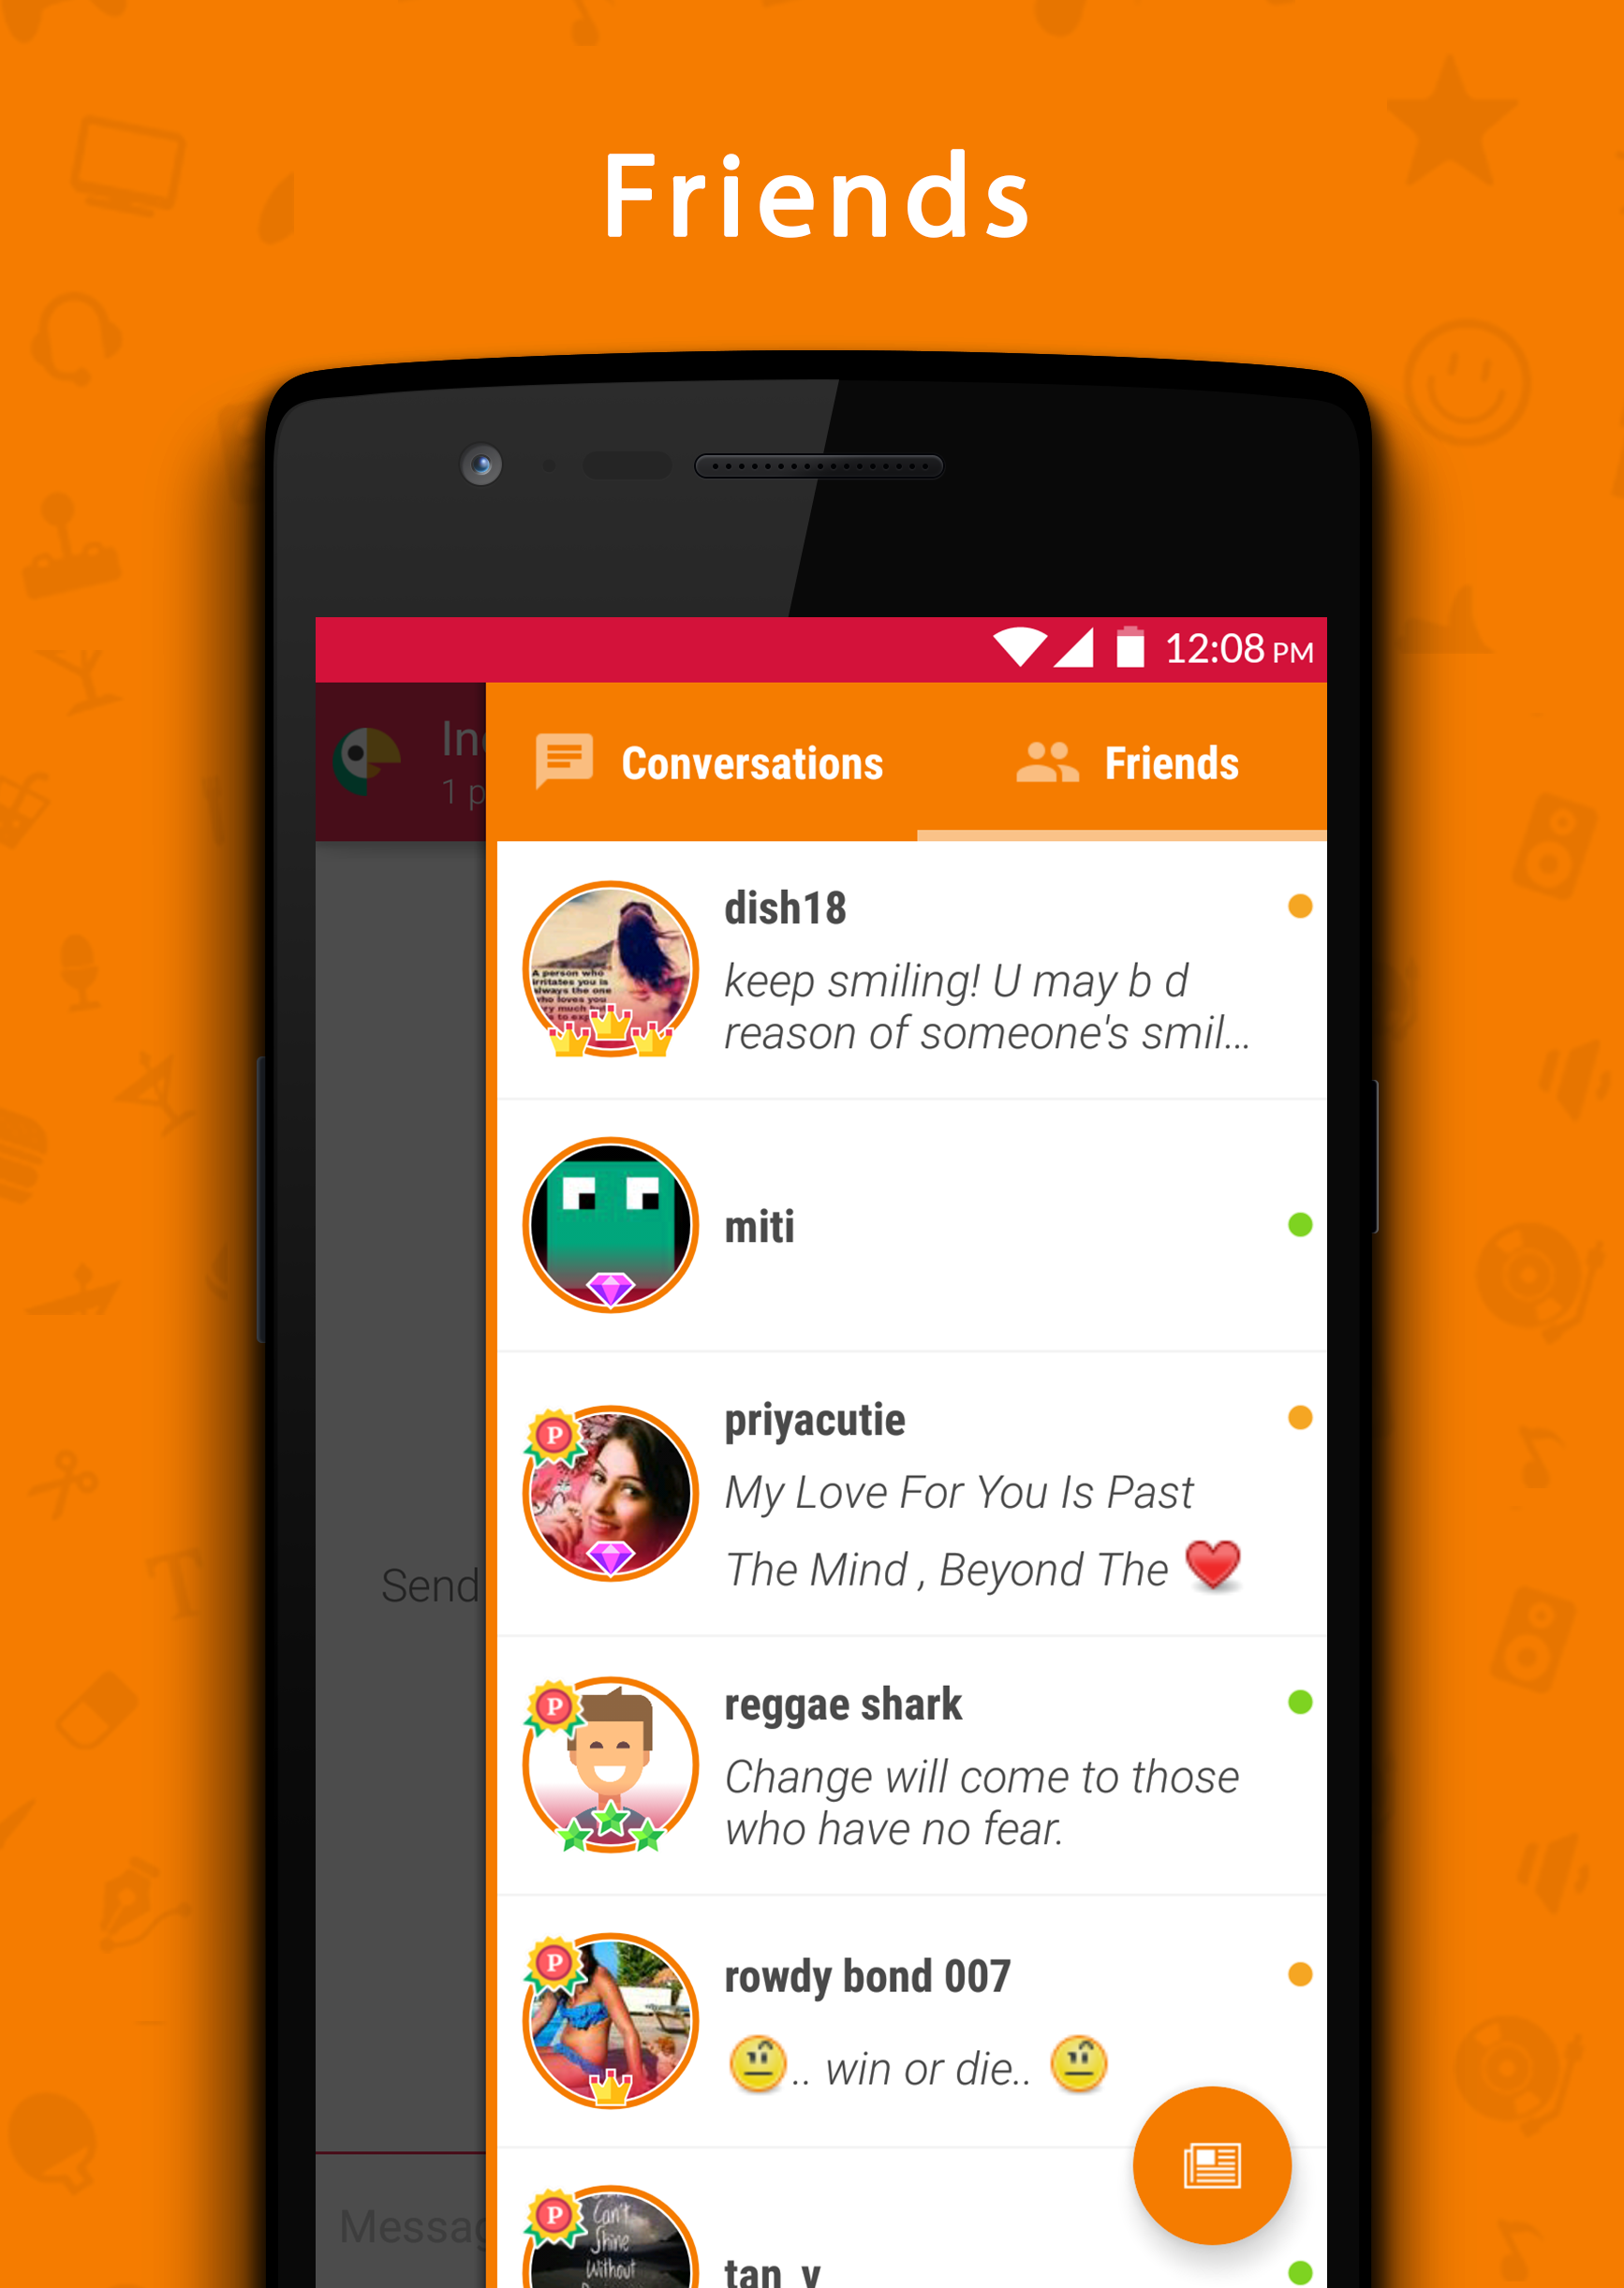 yahoo chat rooms for android Free yahoo chat room and chat rooms site for all to enjoy from all over world this is an alternative chat platform for yahoo chatters note: -by using the website or entering the chat room you agree to the : disclaimers.